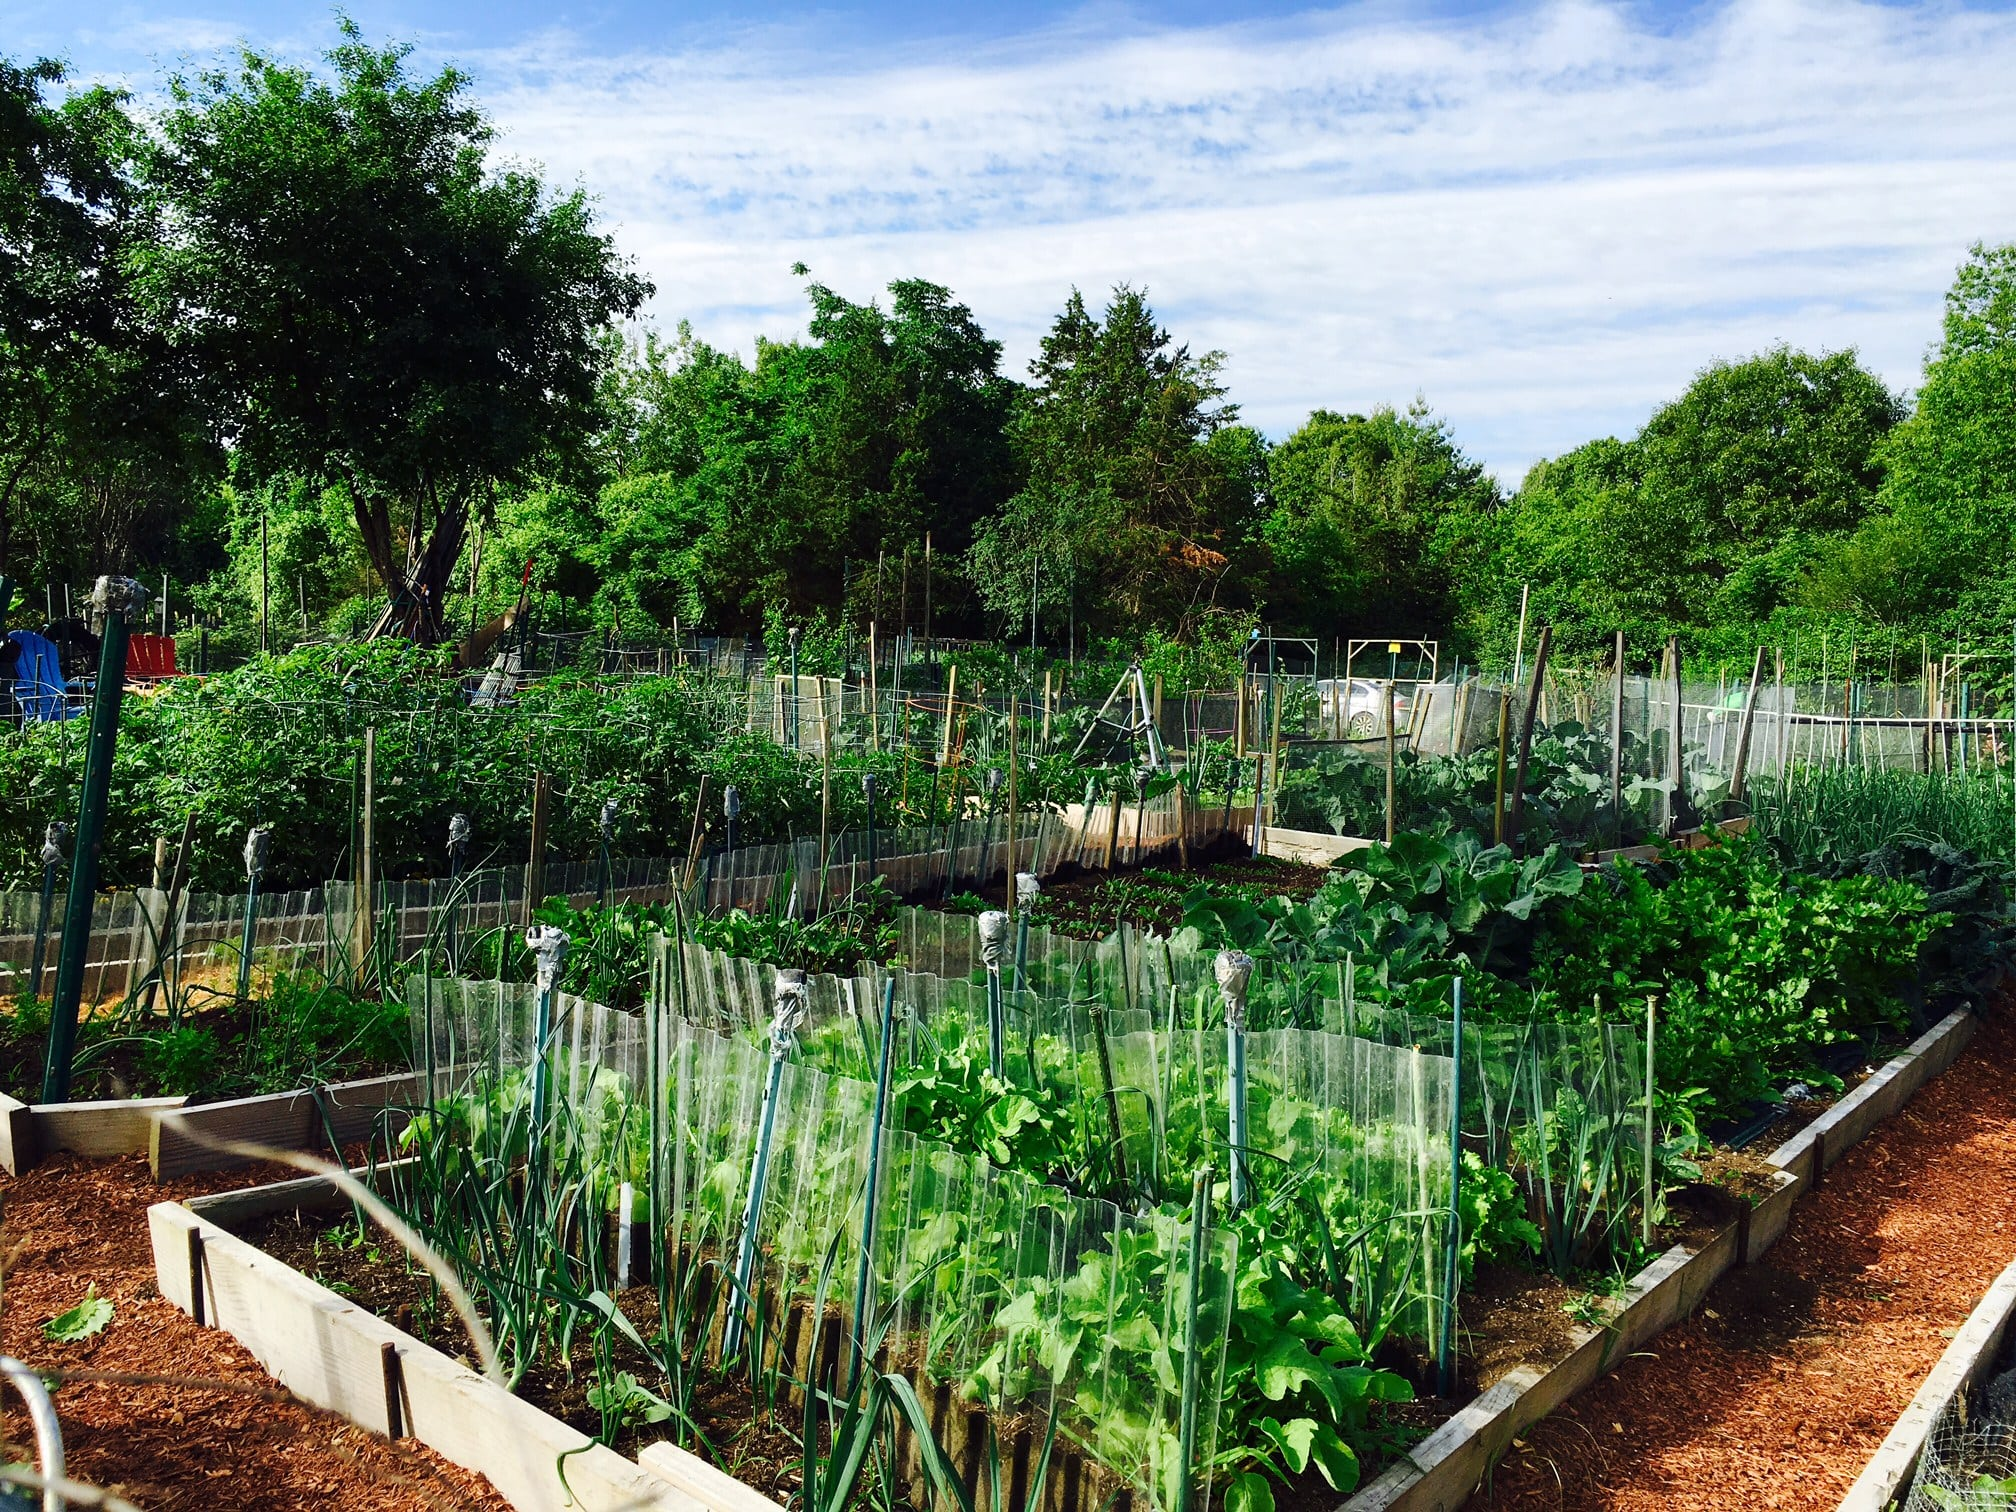 North 40 plot, Wellesley, late Spring